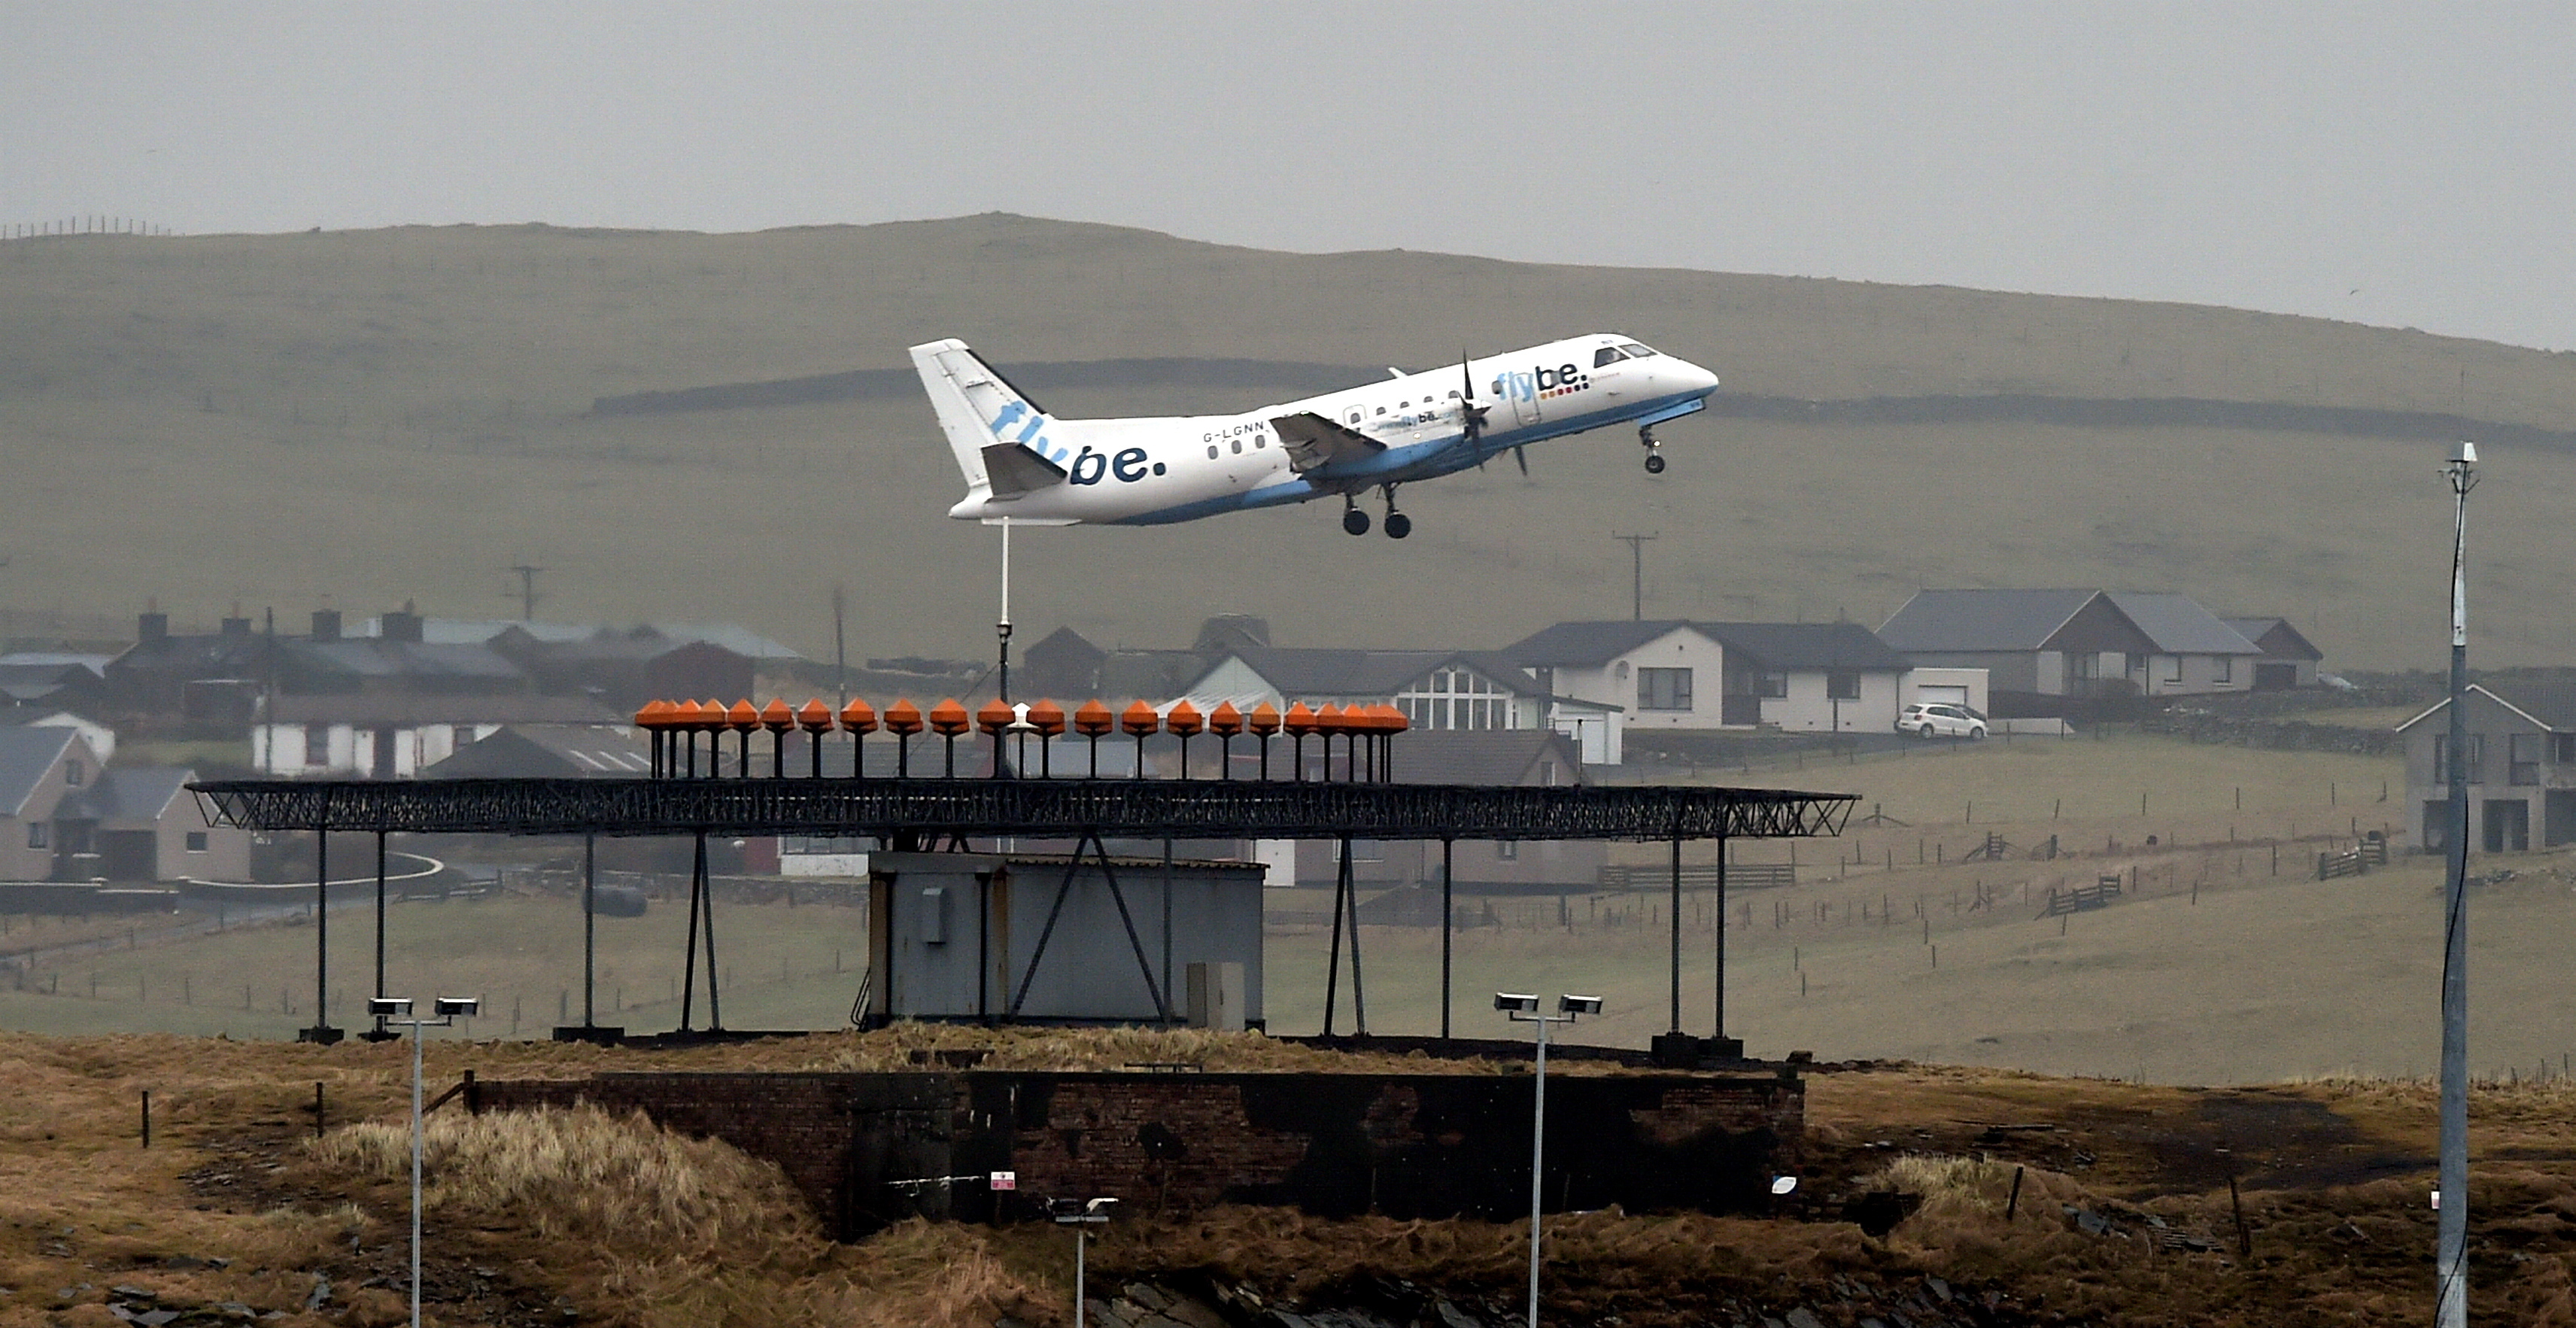 A Flybe aircraft takes off from Sumburgh Airport, Shetland.